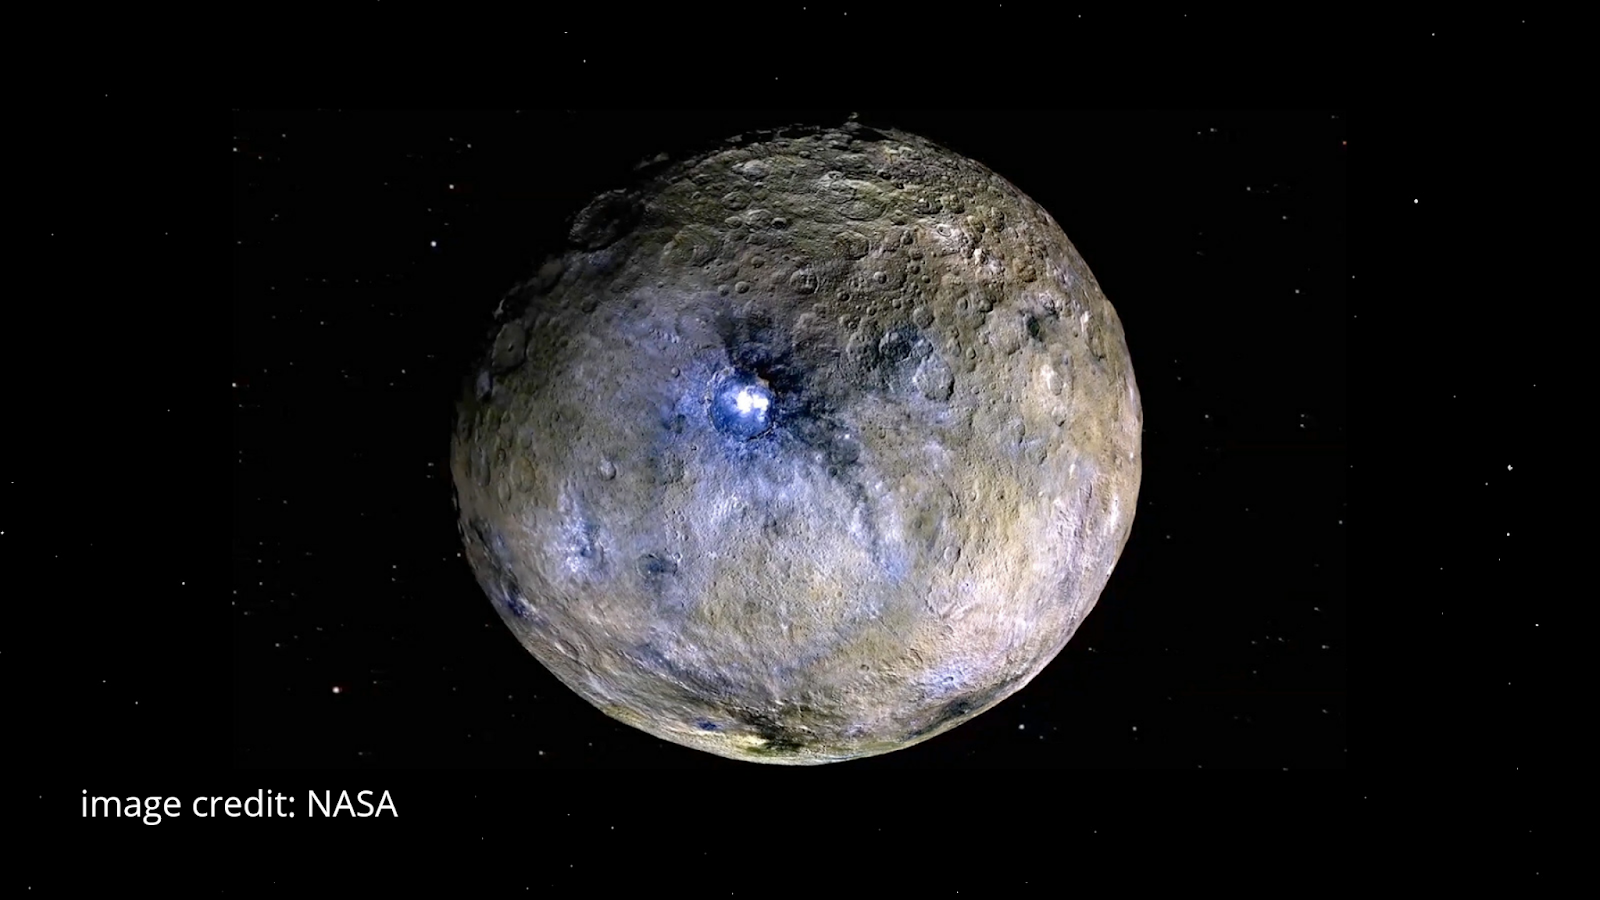 Occator crater of Ceres dwarf planet